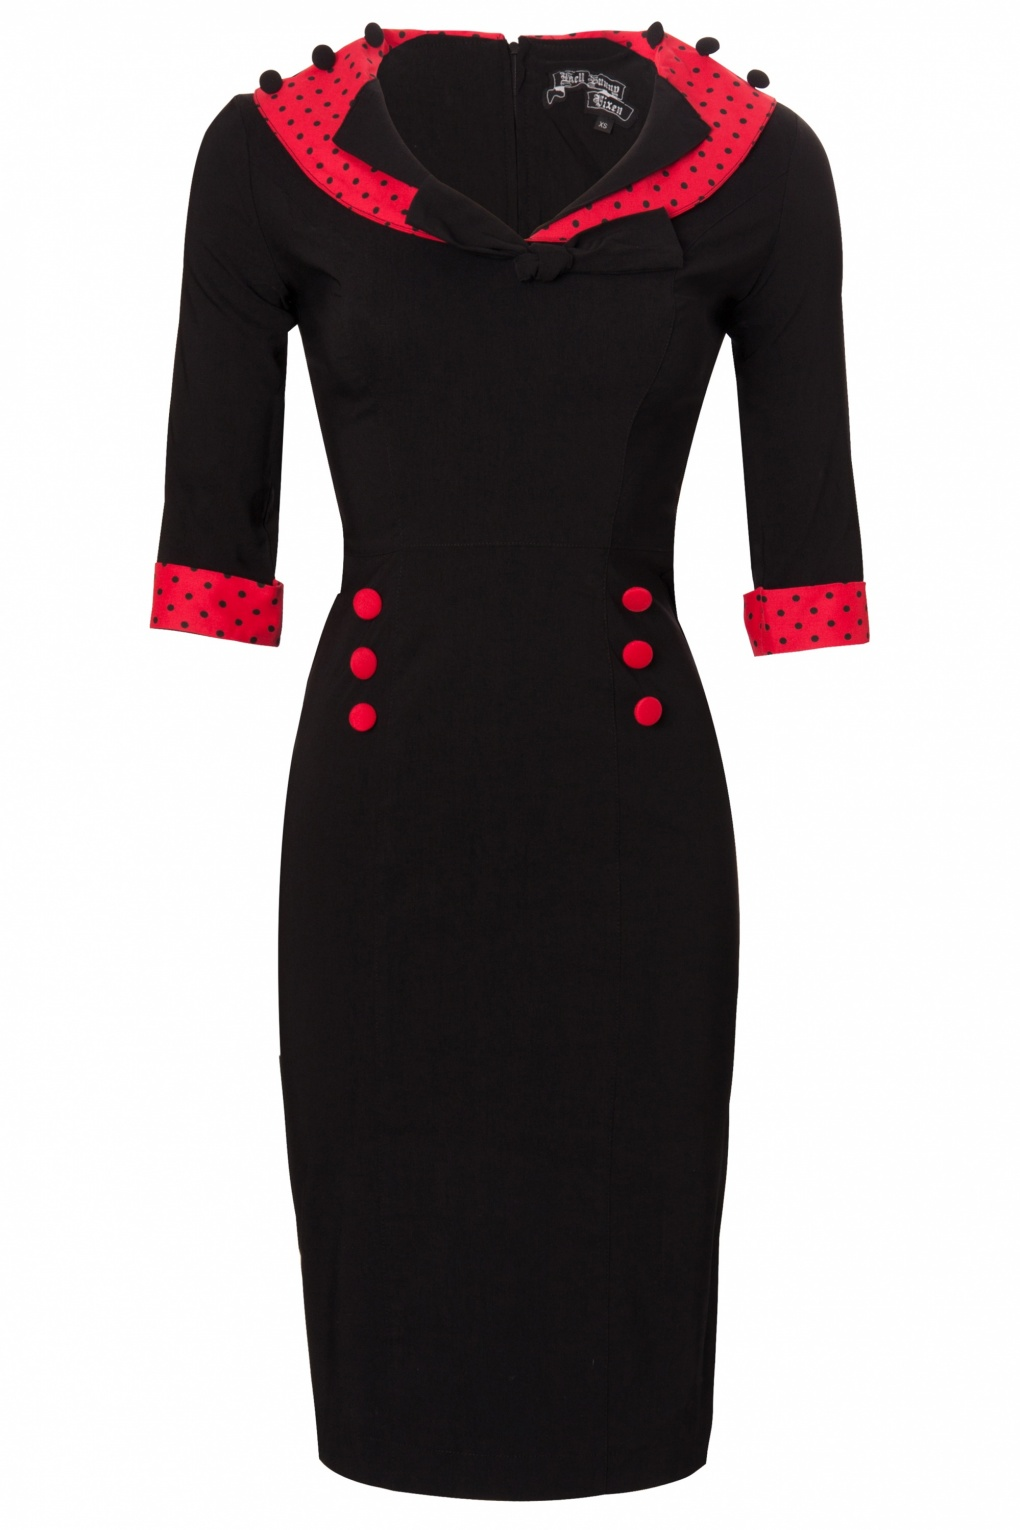 Long-sleeve-dresses-»-Bunny-»-50s-Thelma-Pencil-Dress-Black-Red-polka 19 Special Collection of Long Black Dresses